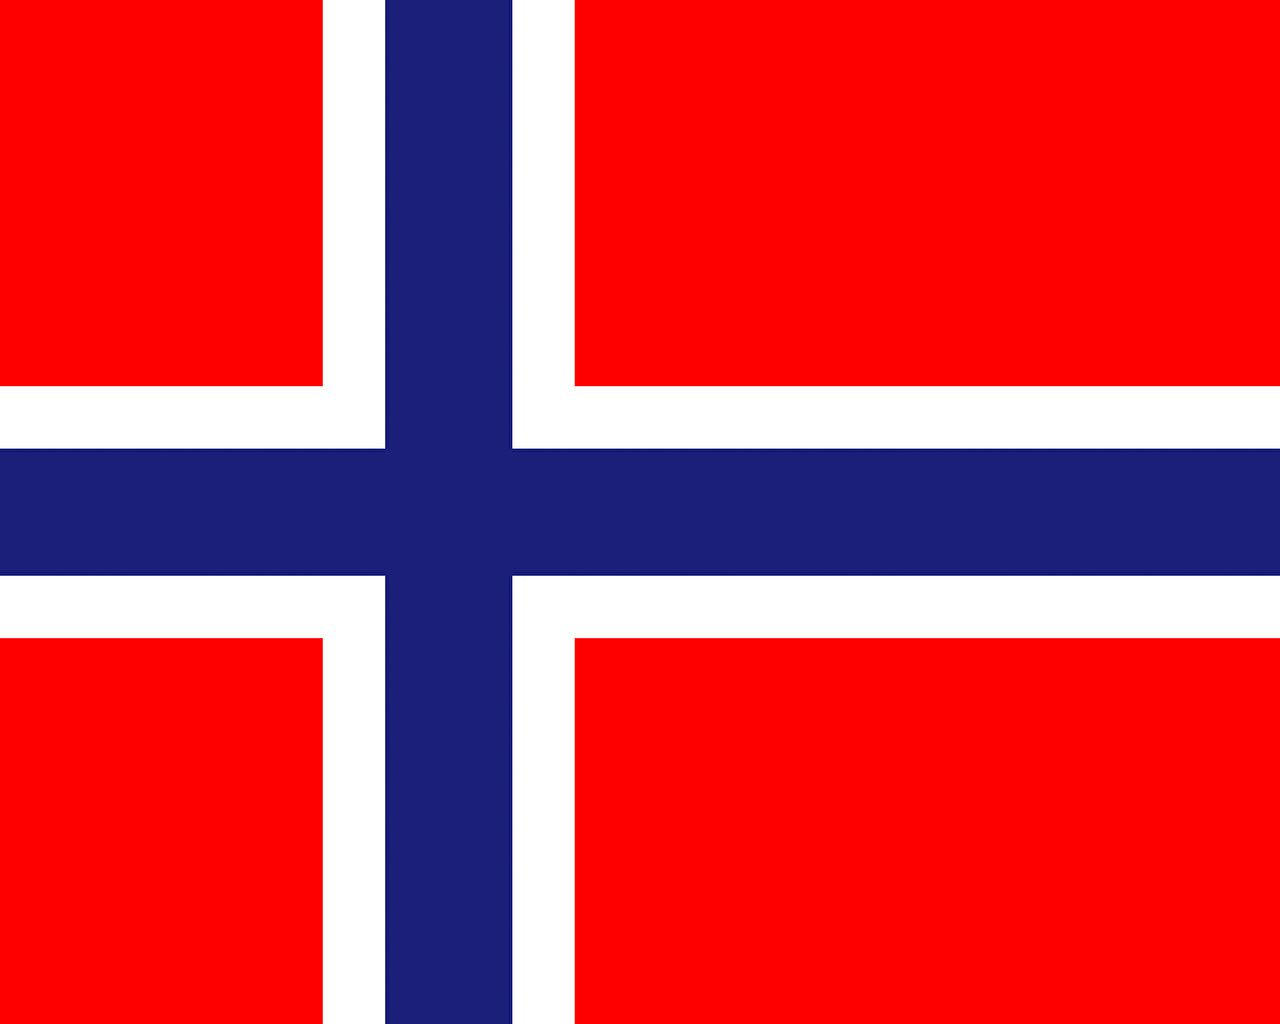 1280x1024 Norway Flag Wallpaper (90+ images in Collection) Page 1